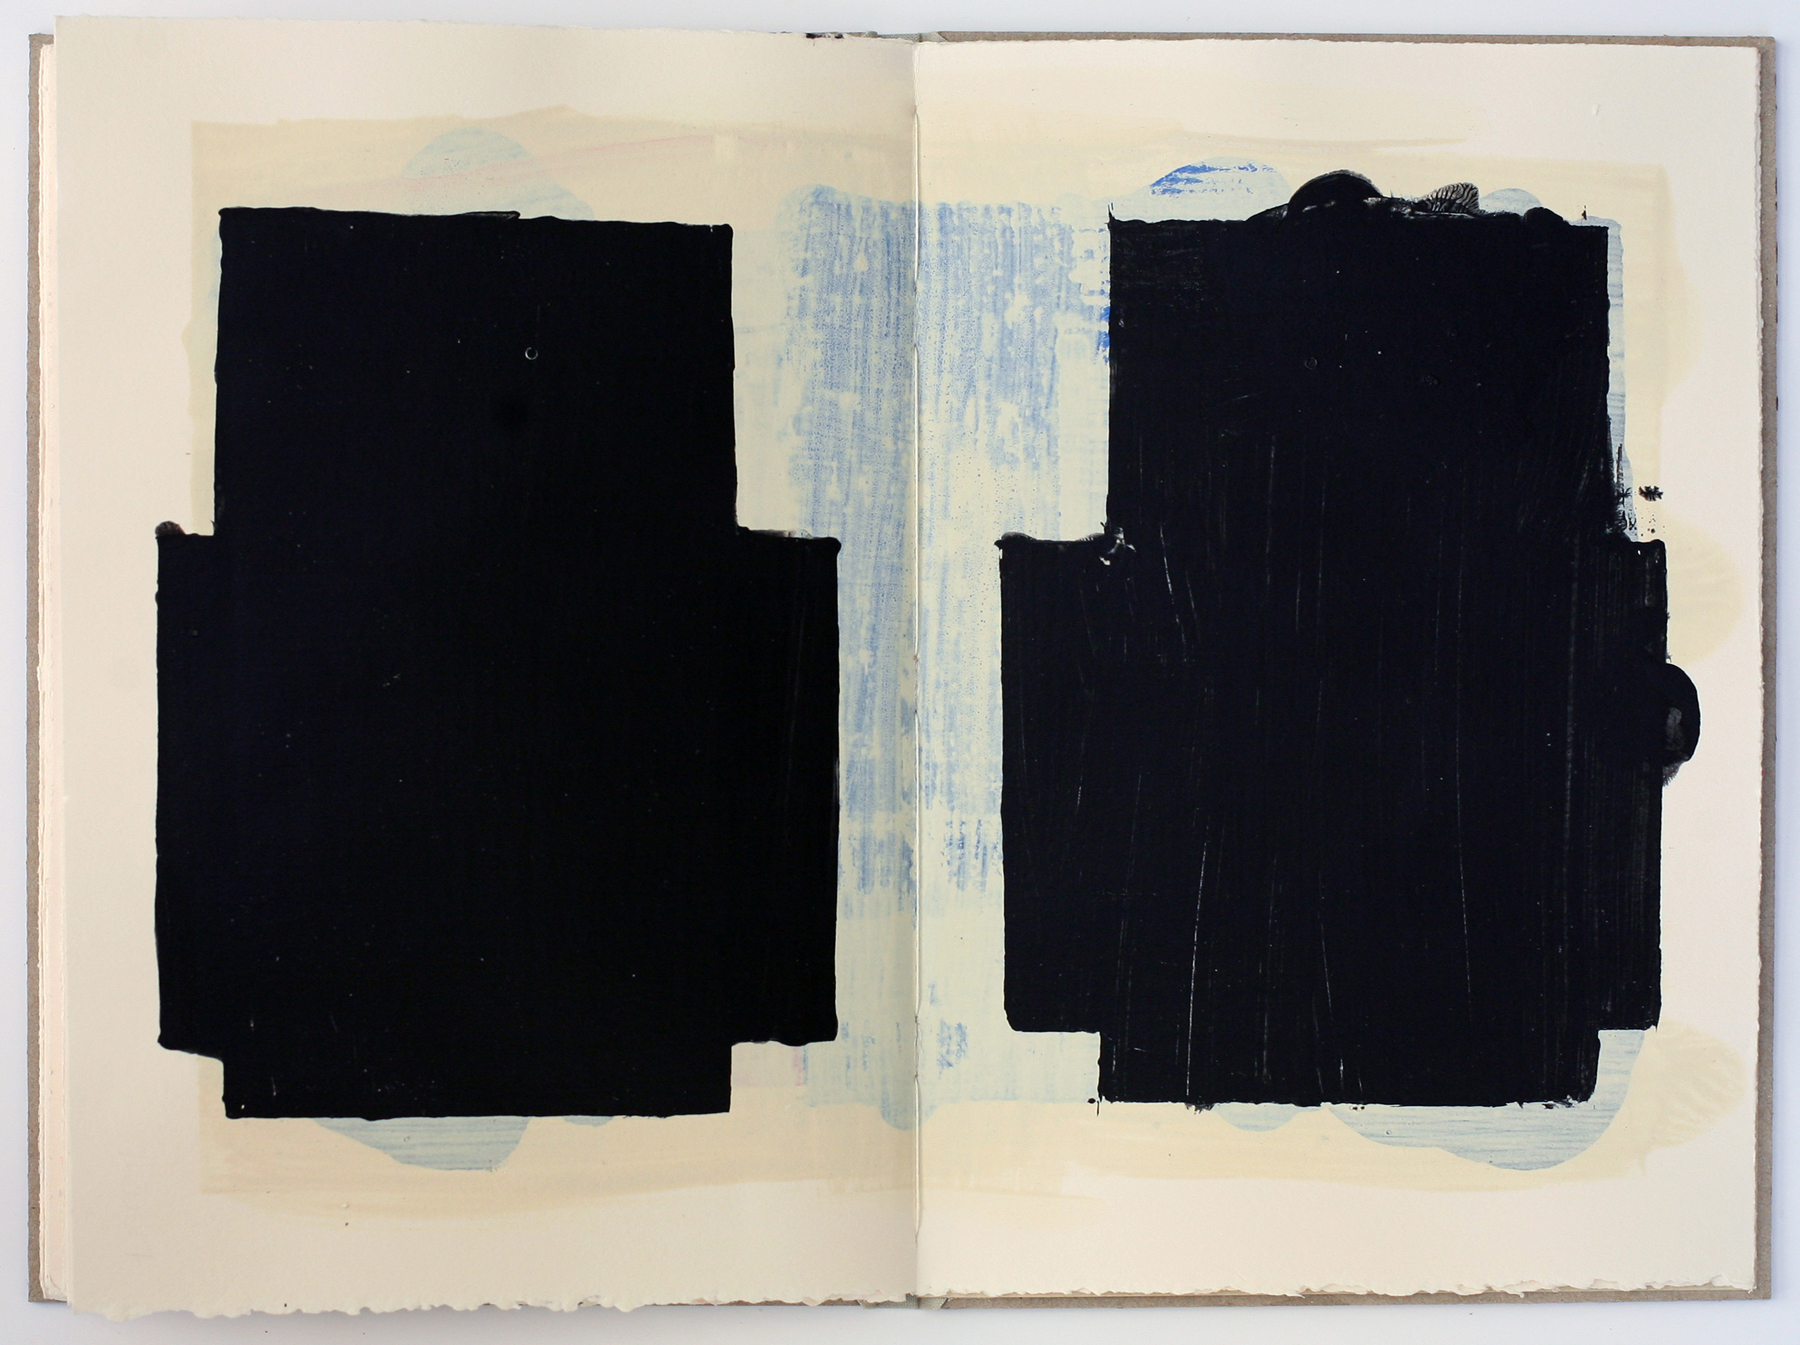 G. Lekeu, edition of 10, 2014 (in 4 private collections)